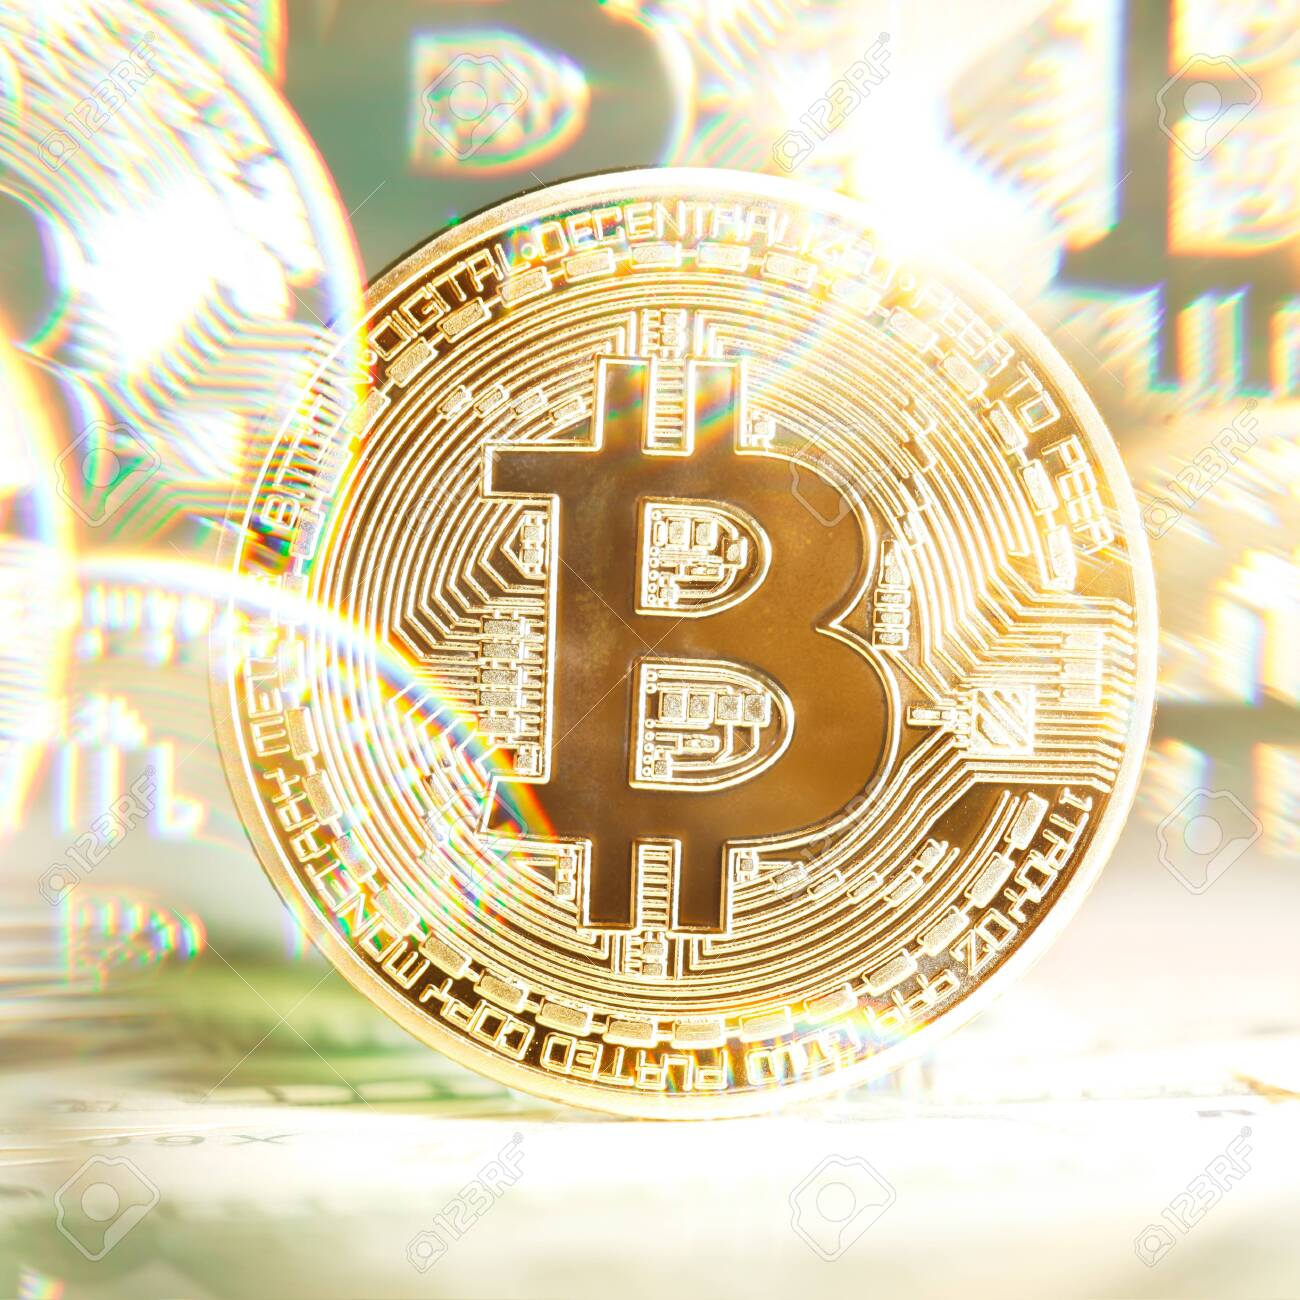 Digital virtual currency and bitcoins stock international hockey betting rules for craps